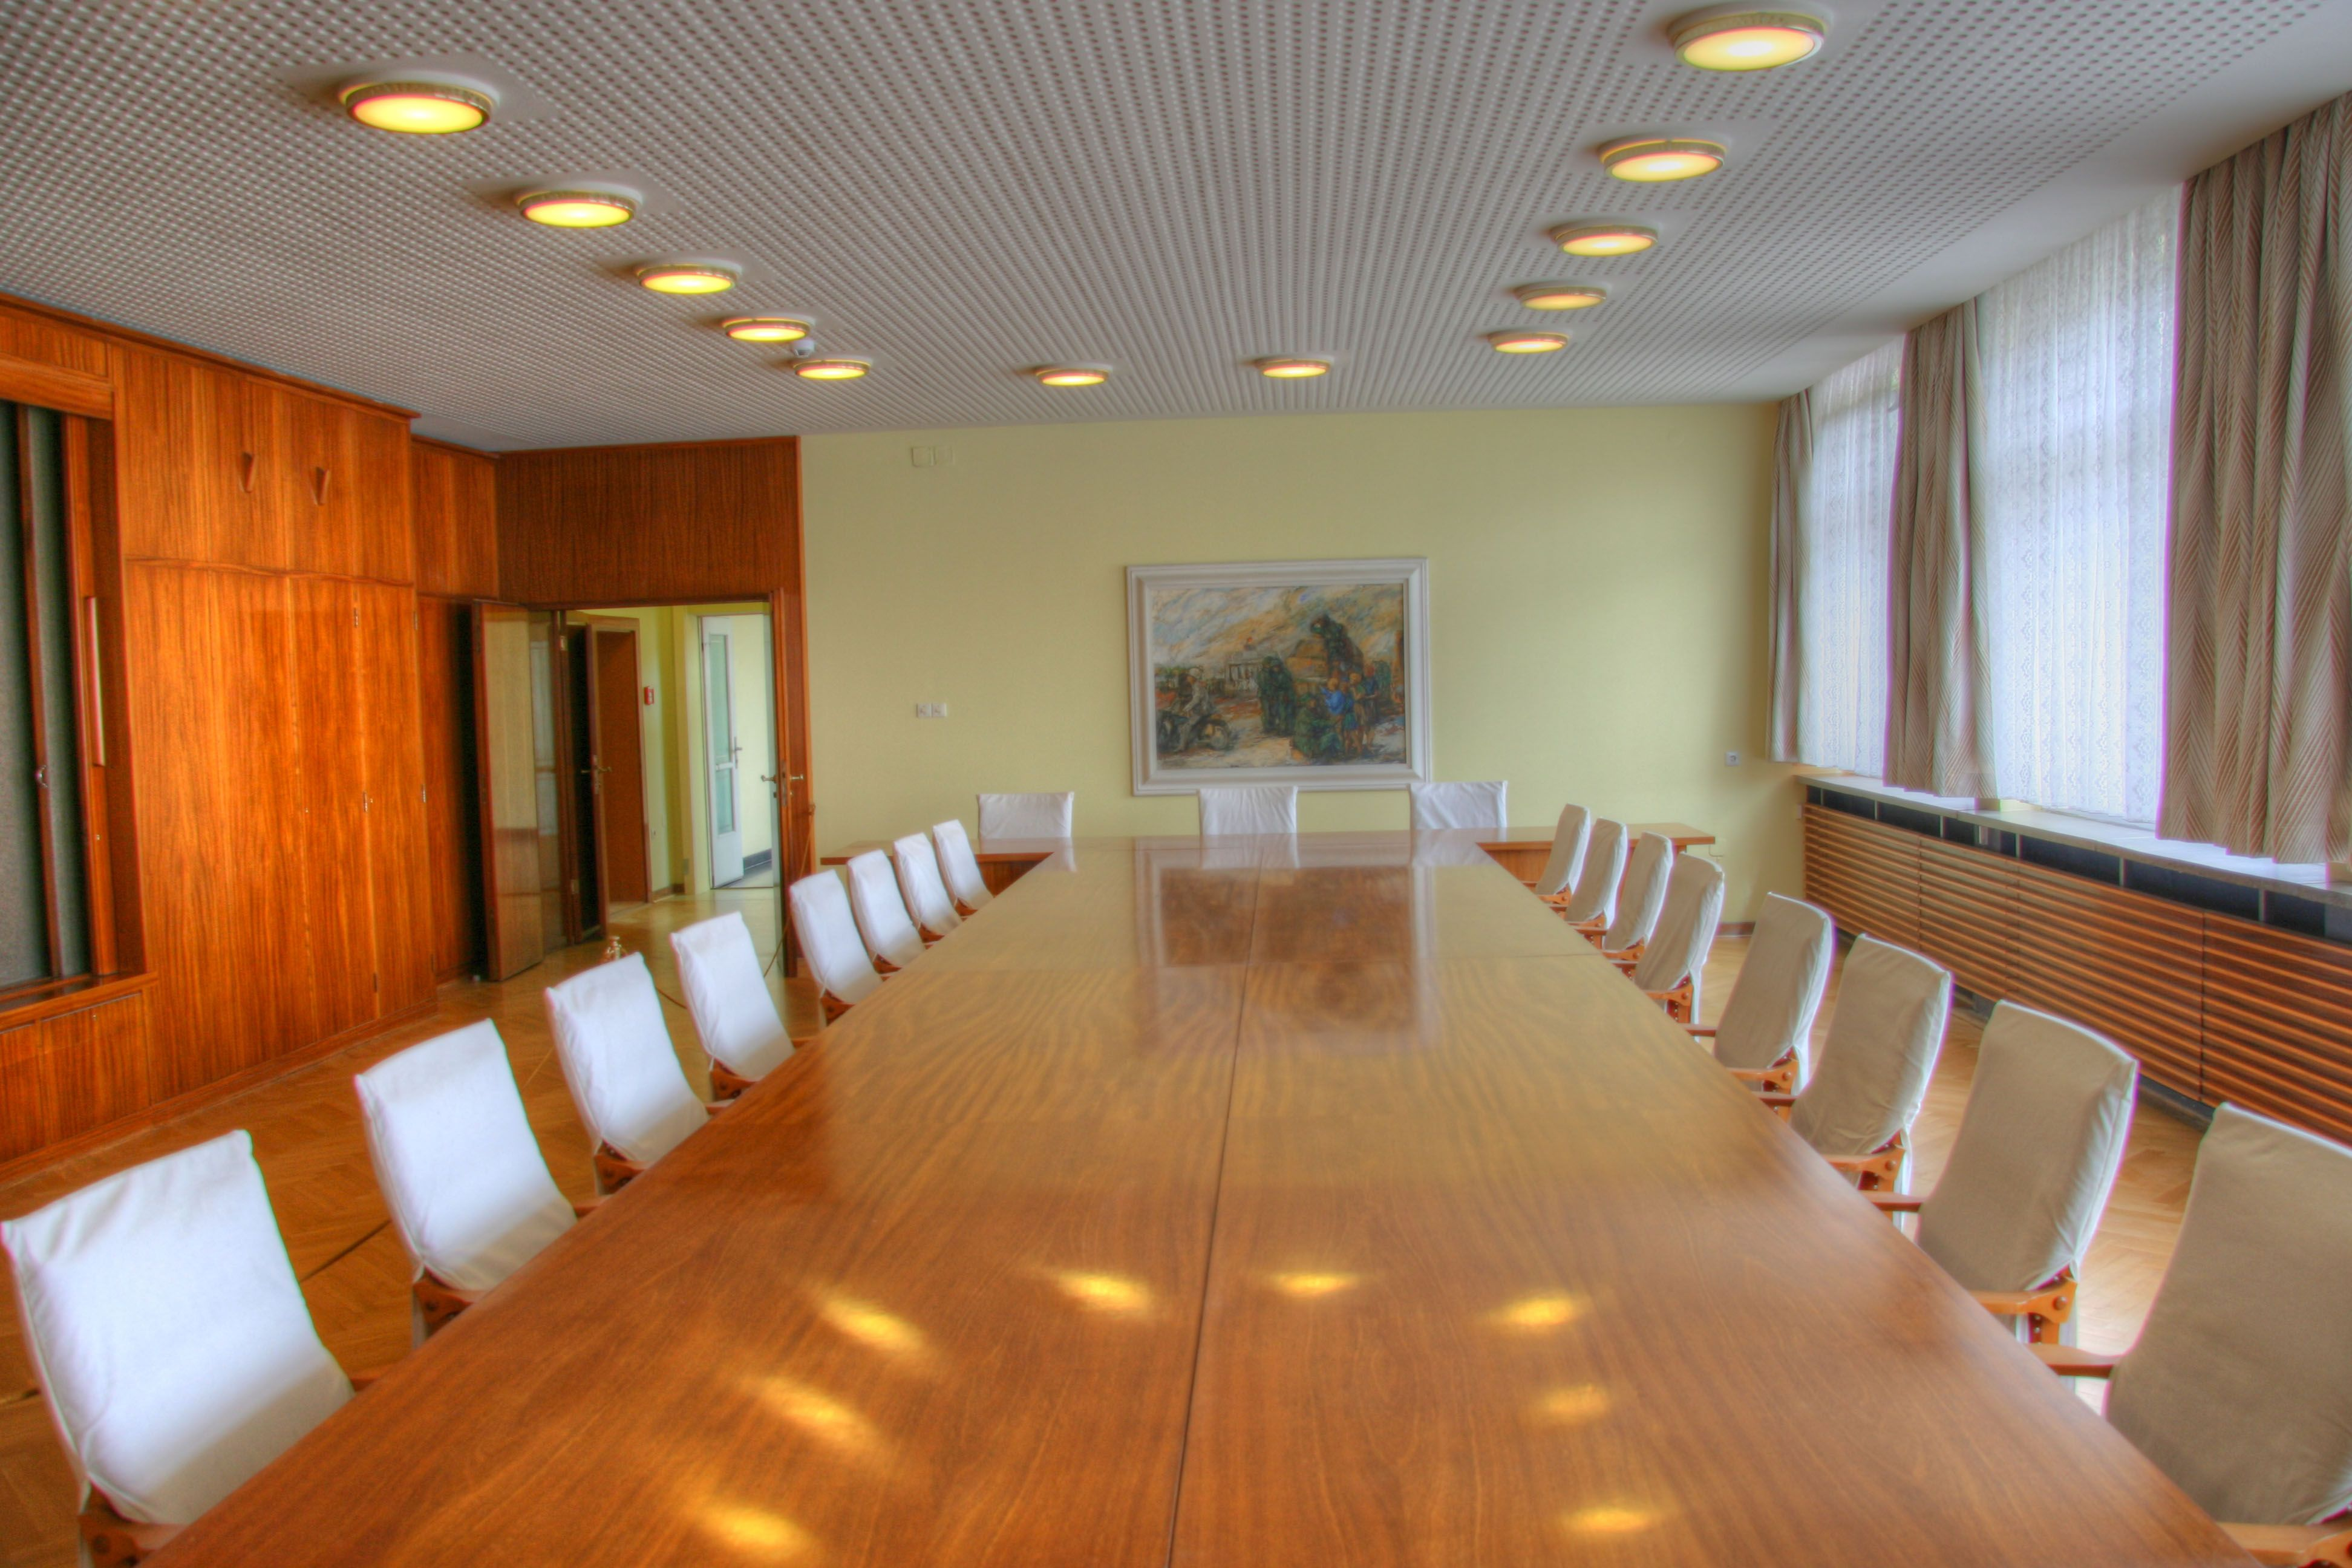 A conference room next to Erich Mielke\'s office in The Stasi Museum ...